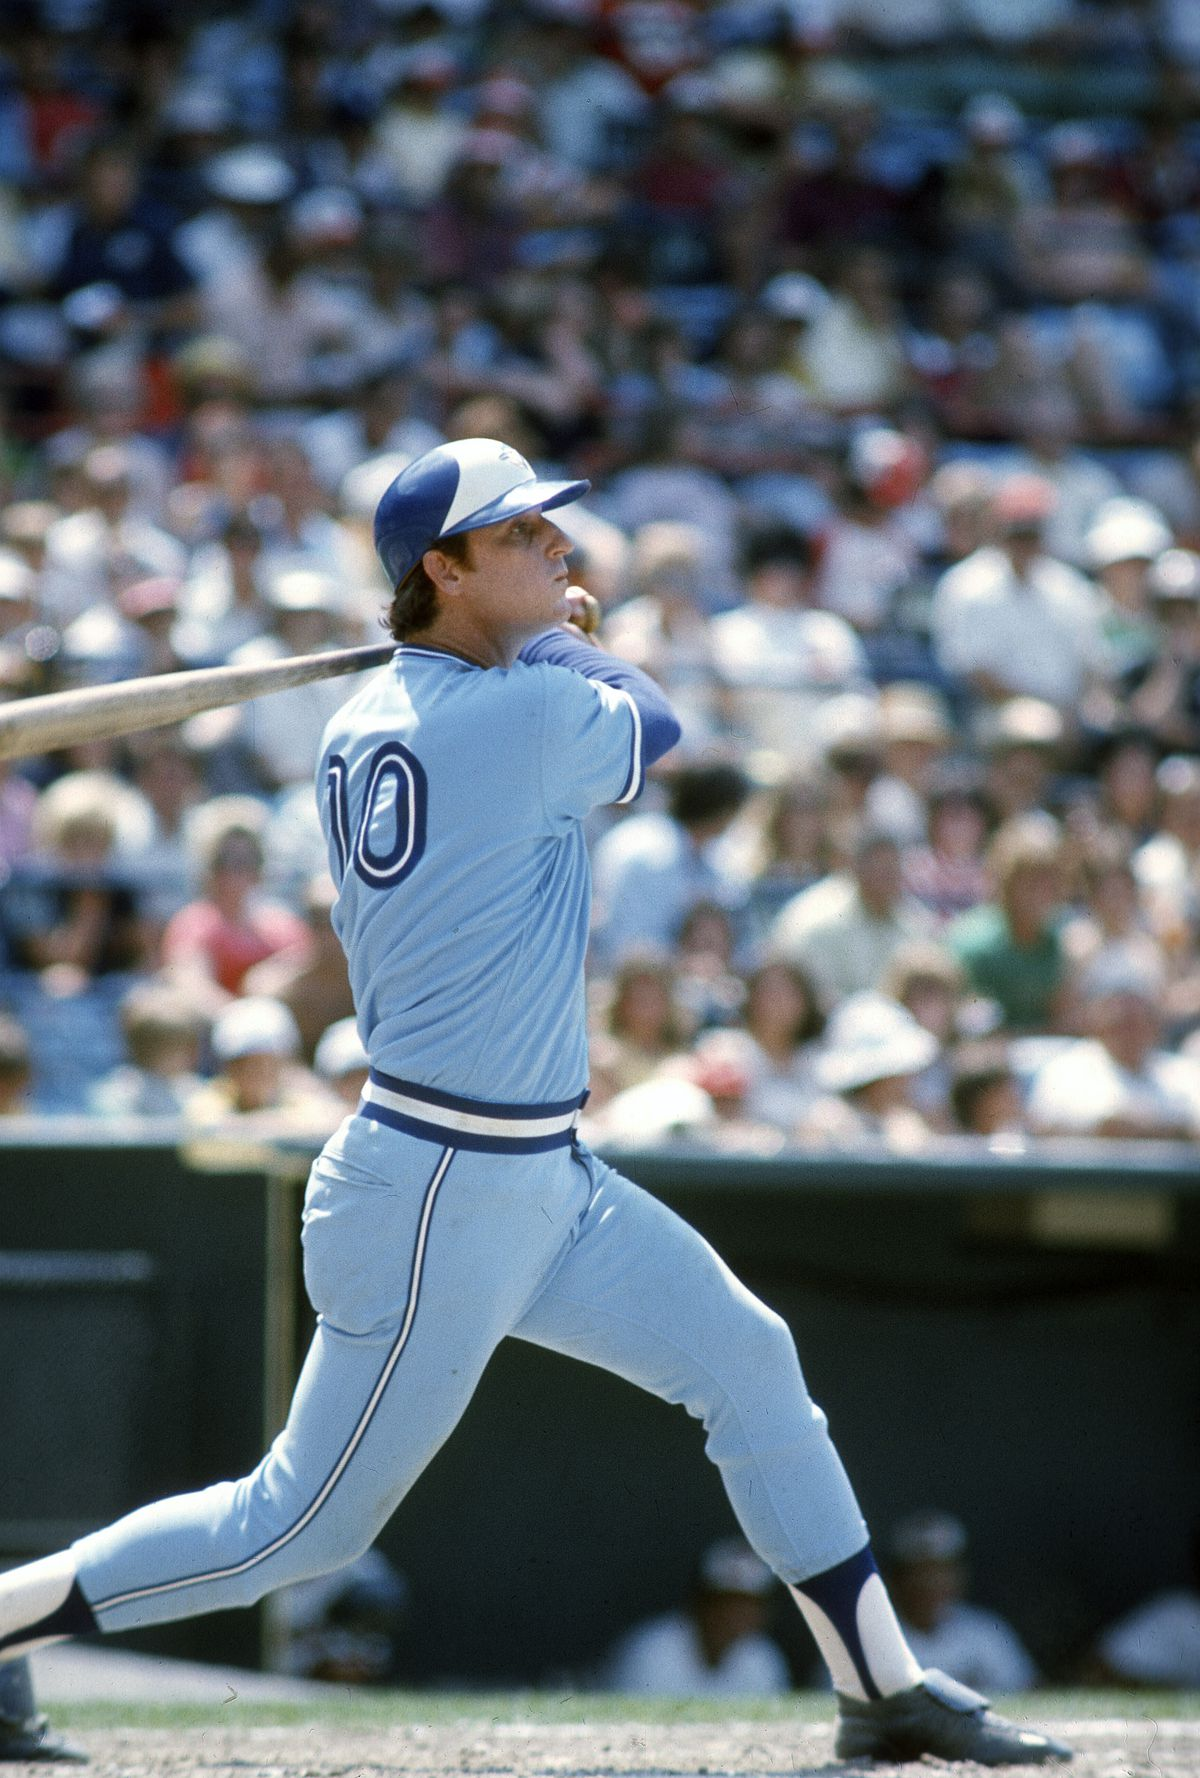 Doug Rader shows off his #10 on a swing in 1977.